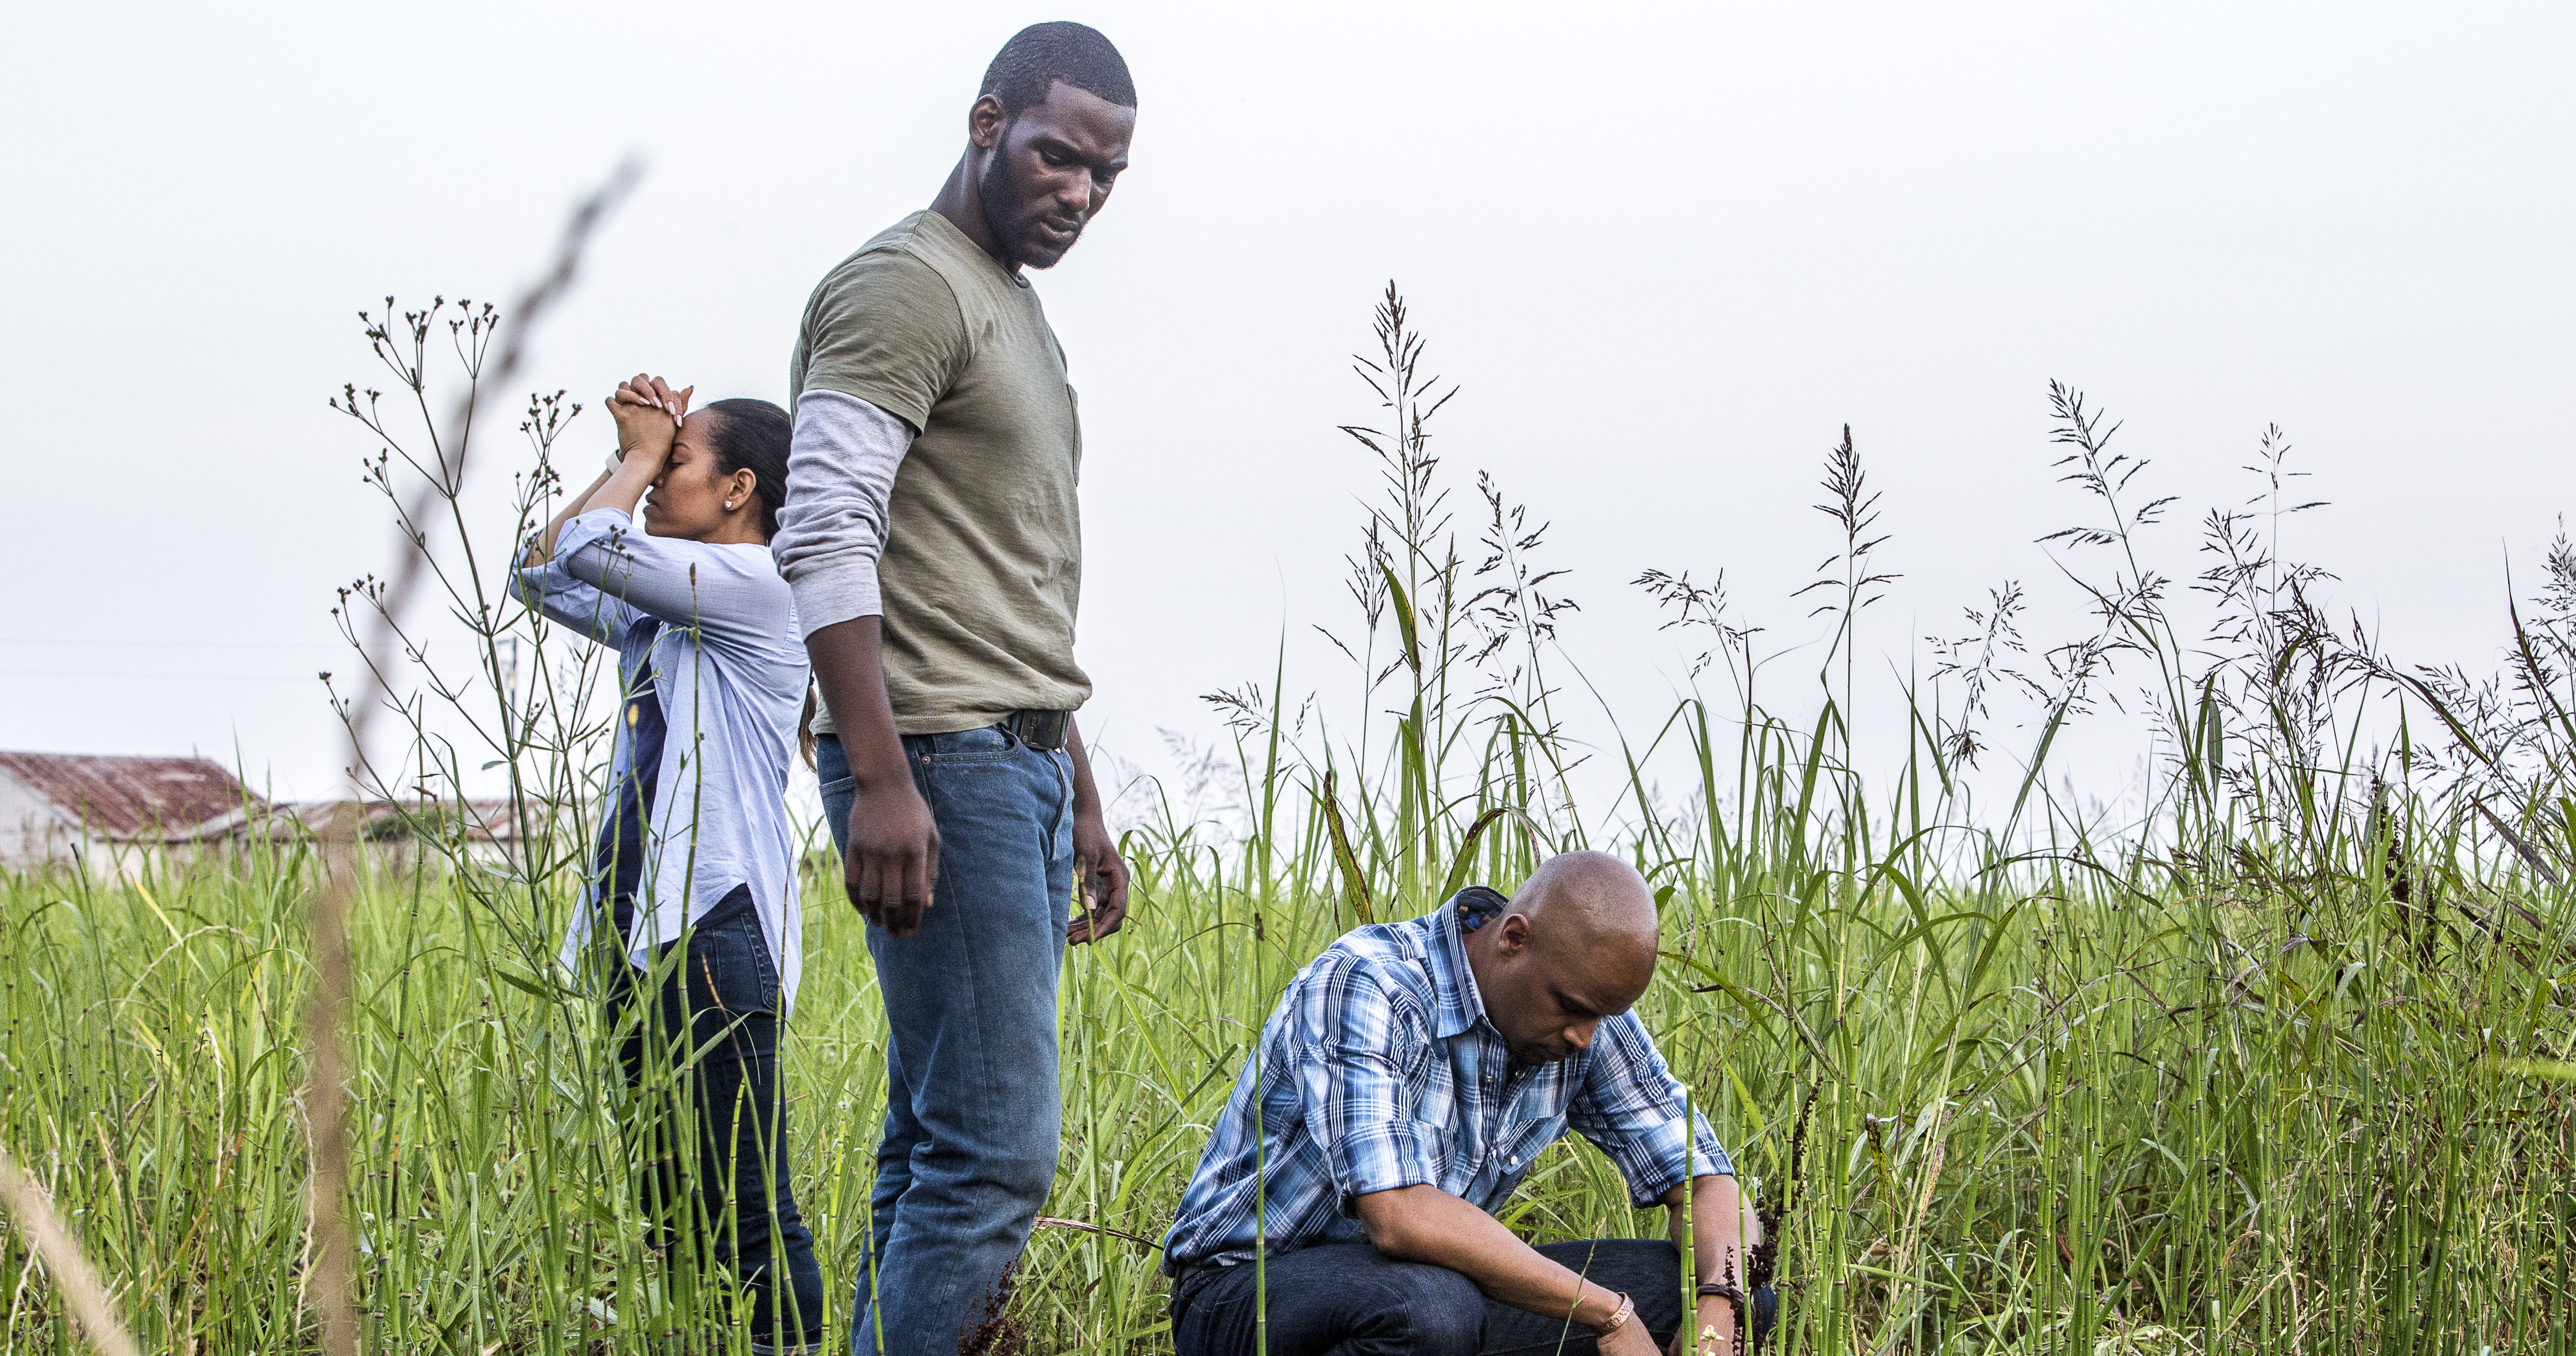 Episode 403: Queen Sugar - S1E9 - Next to Nothing